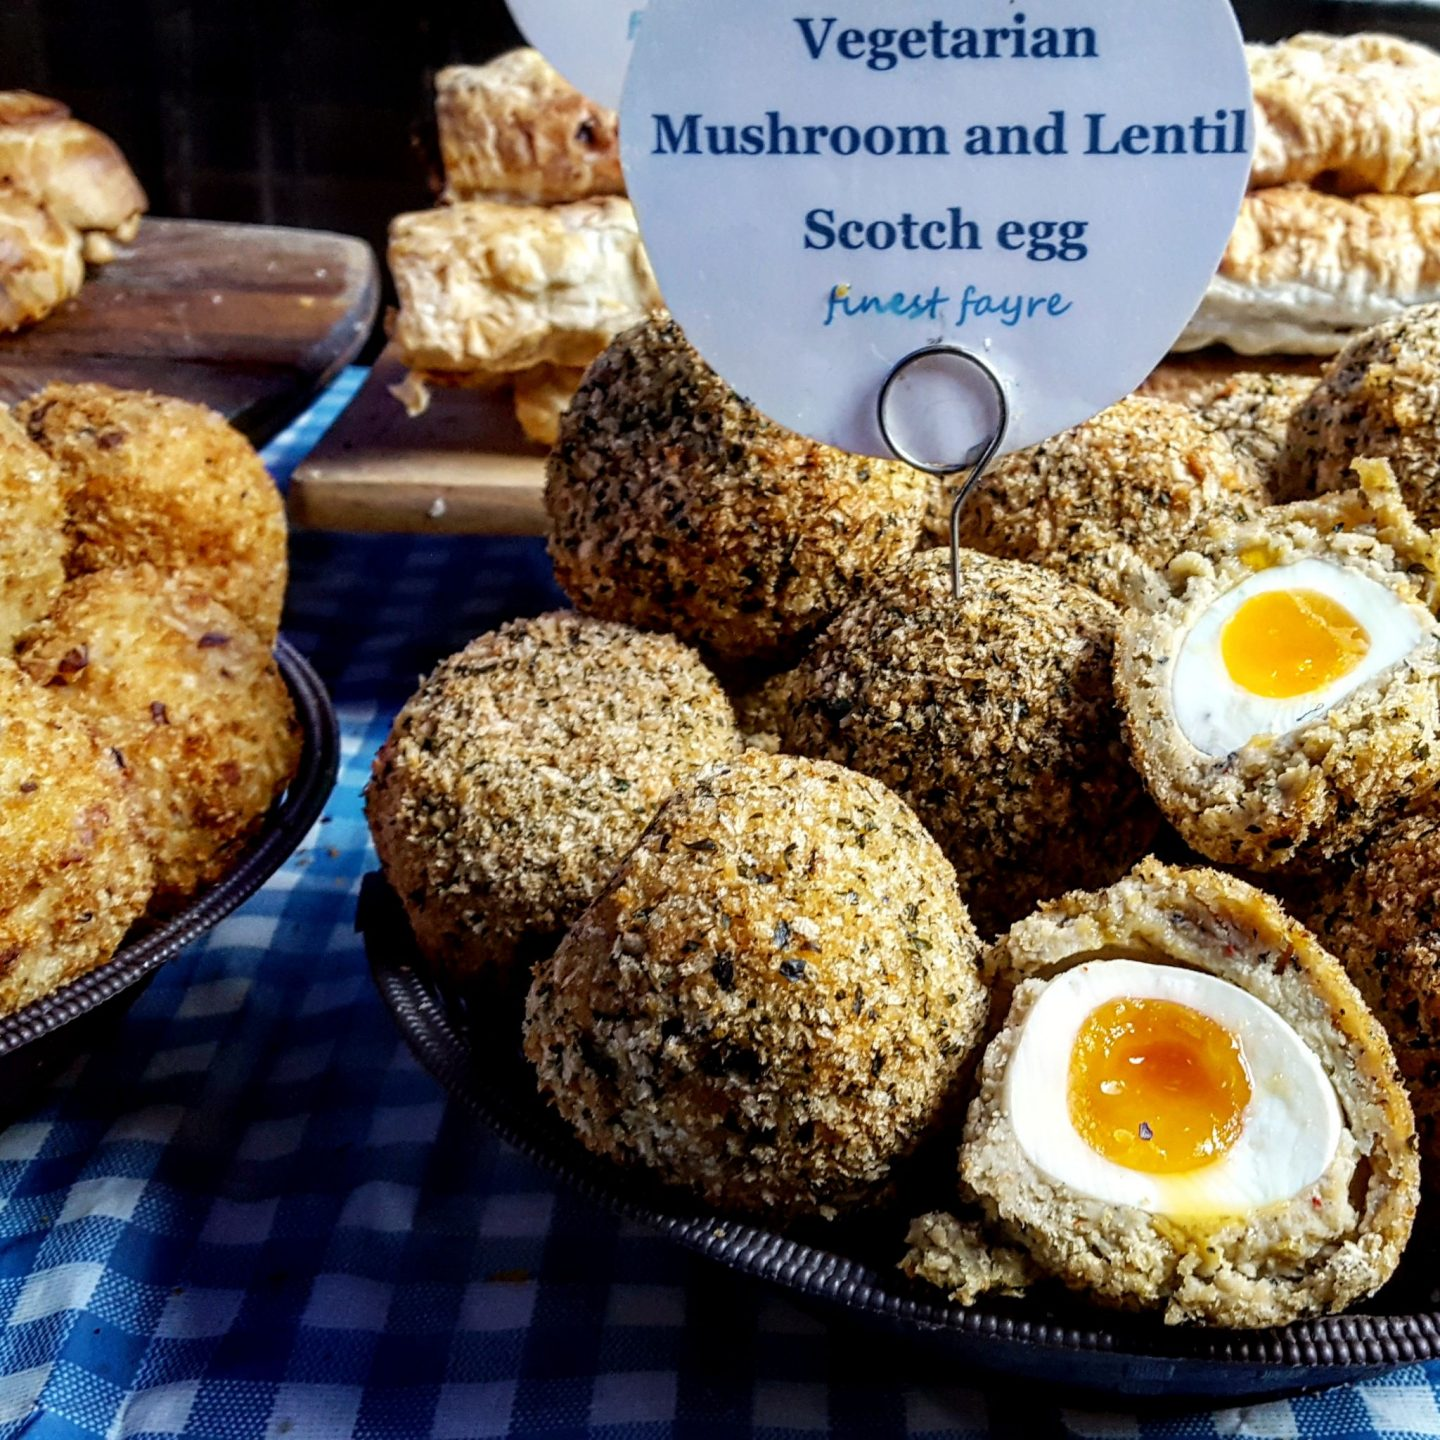 Maltby Street Market,Finest Fayre, Scotch Egg